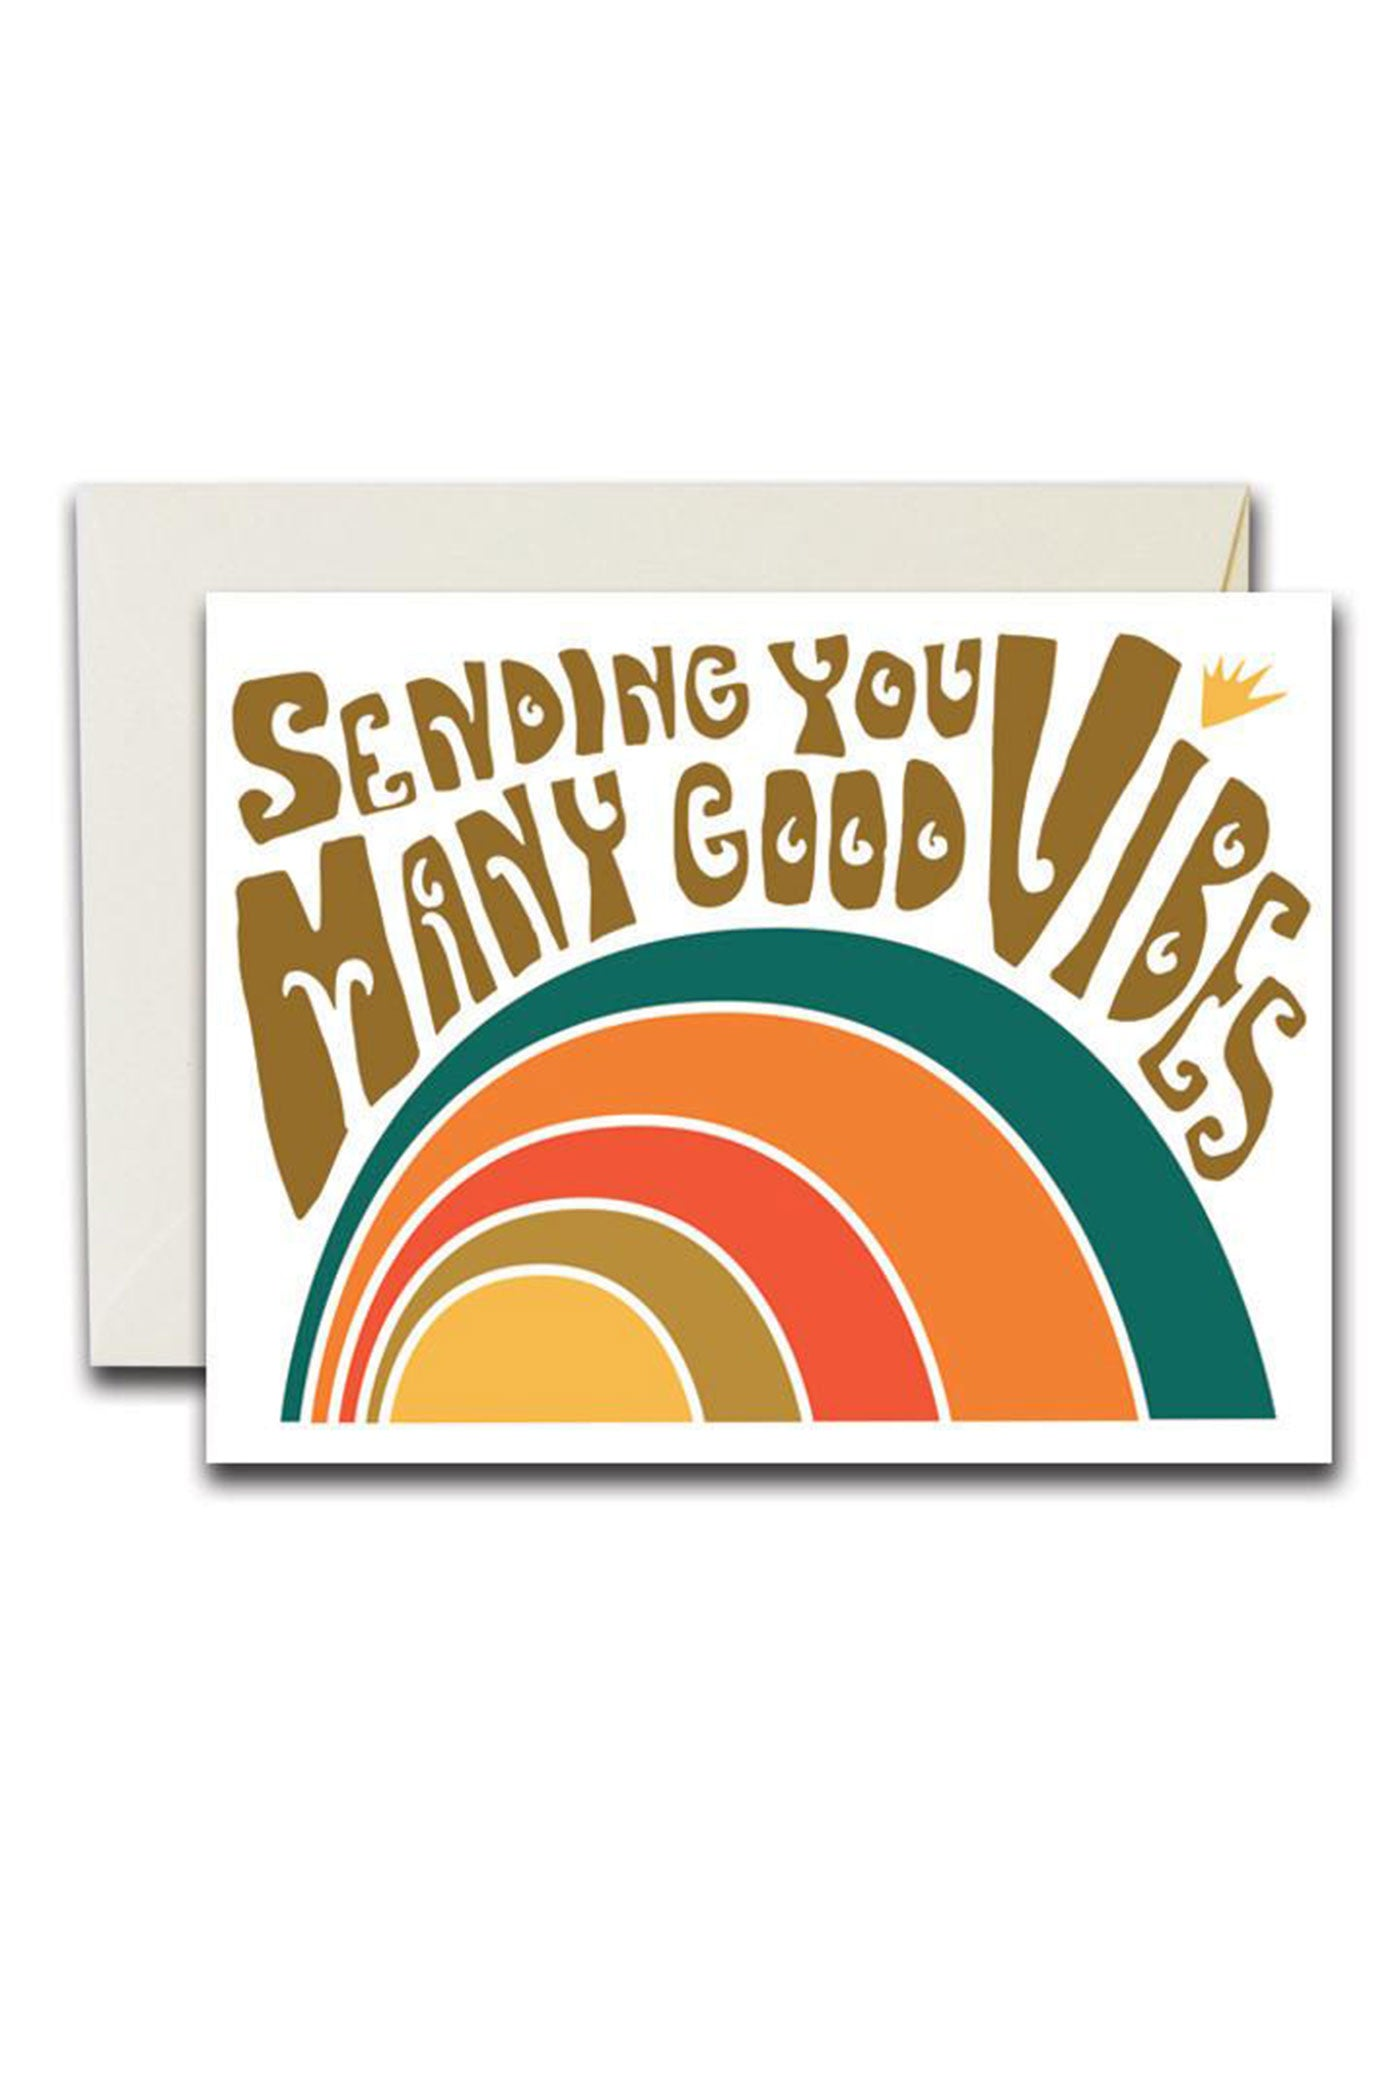 Many Good Vibes Card by Native Bear